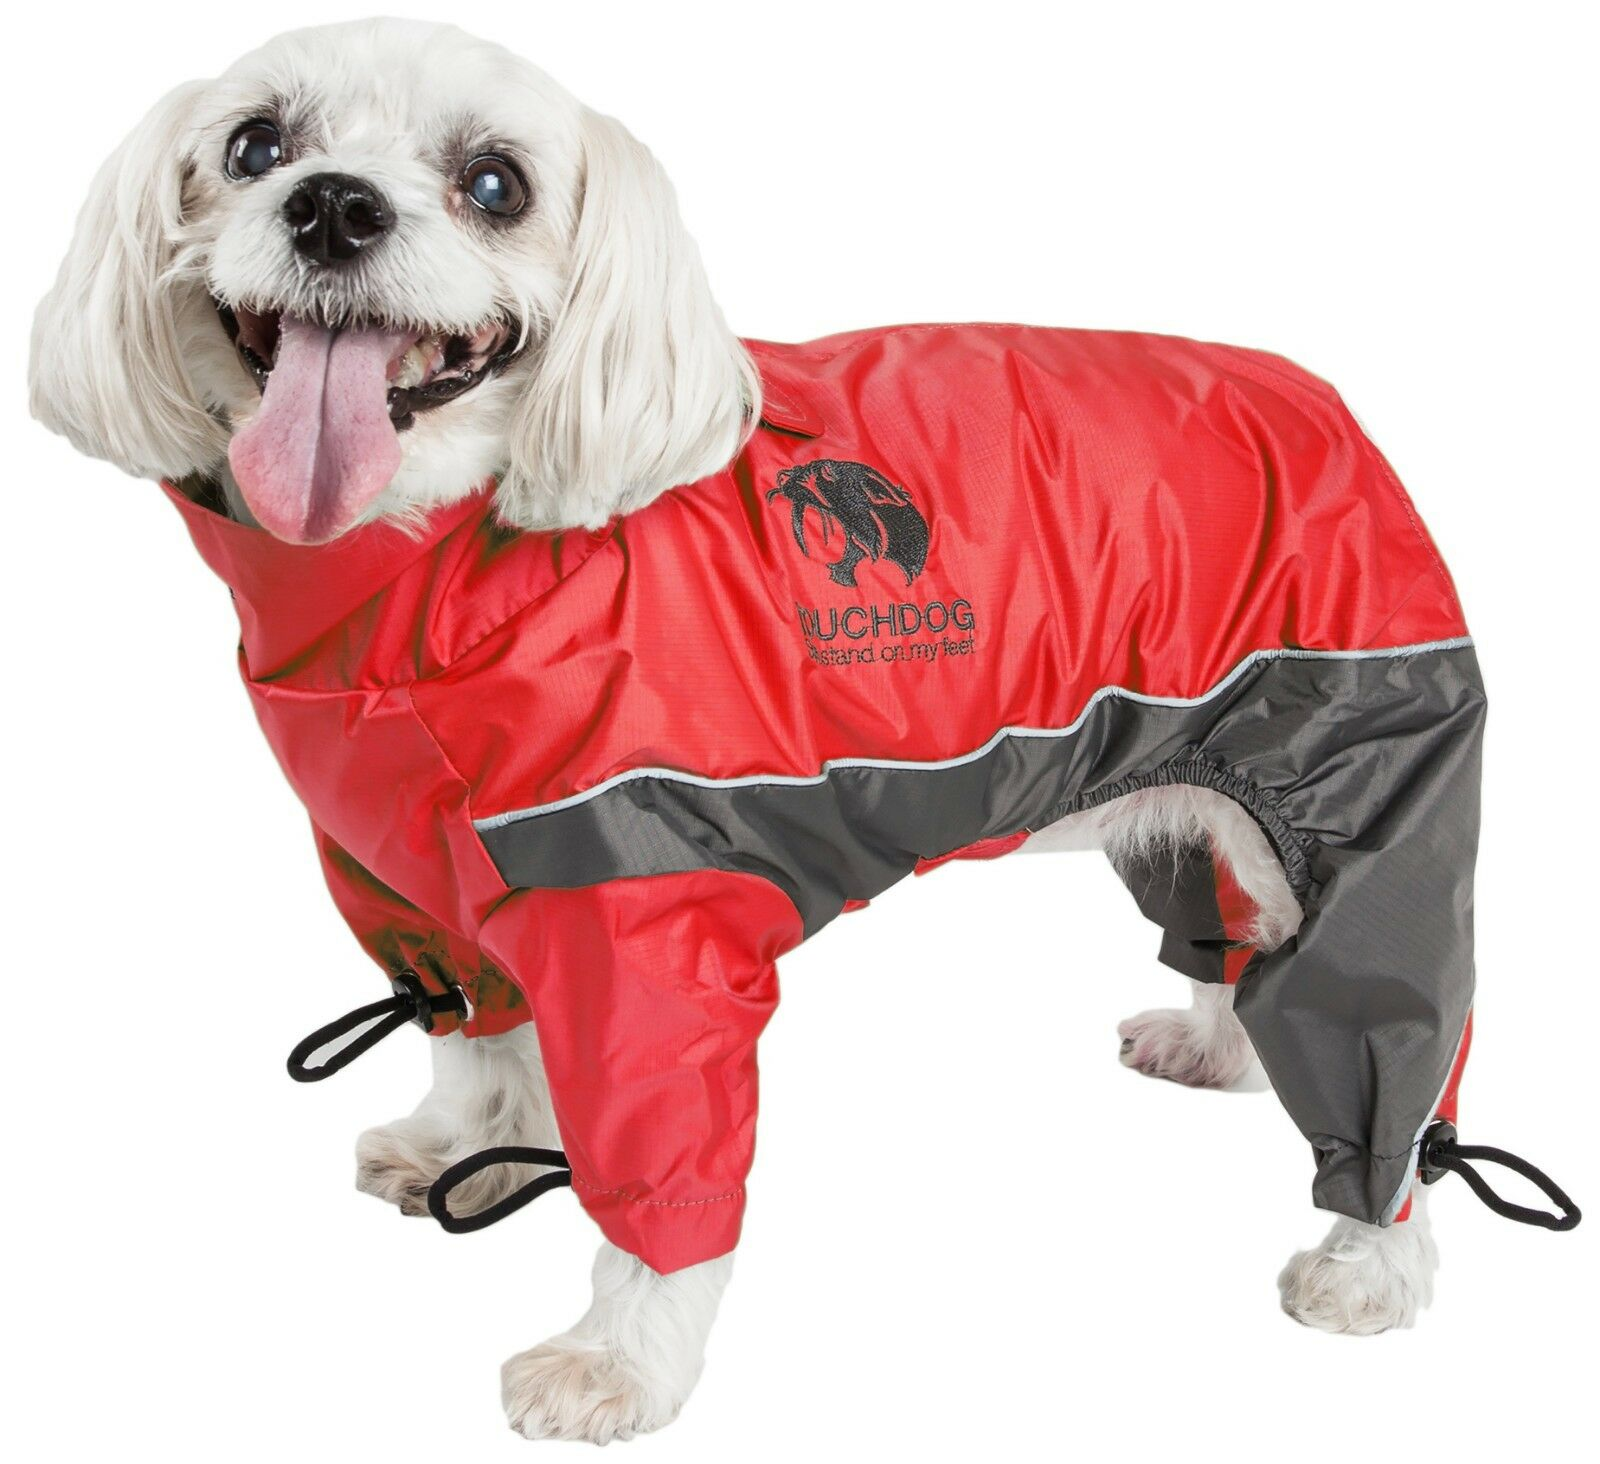 Quantum-Ice Full-Body Adjustable Reflective Reflective Reflective Pet Dog Coat Jacket w  Insulation 3db1d8